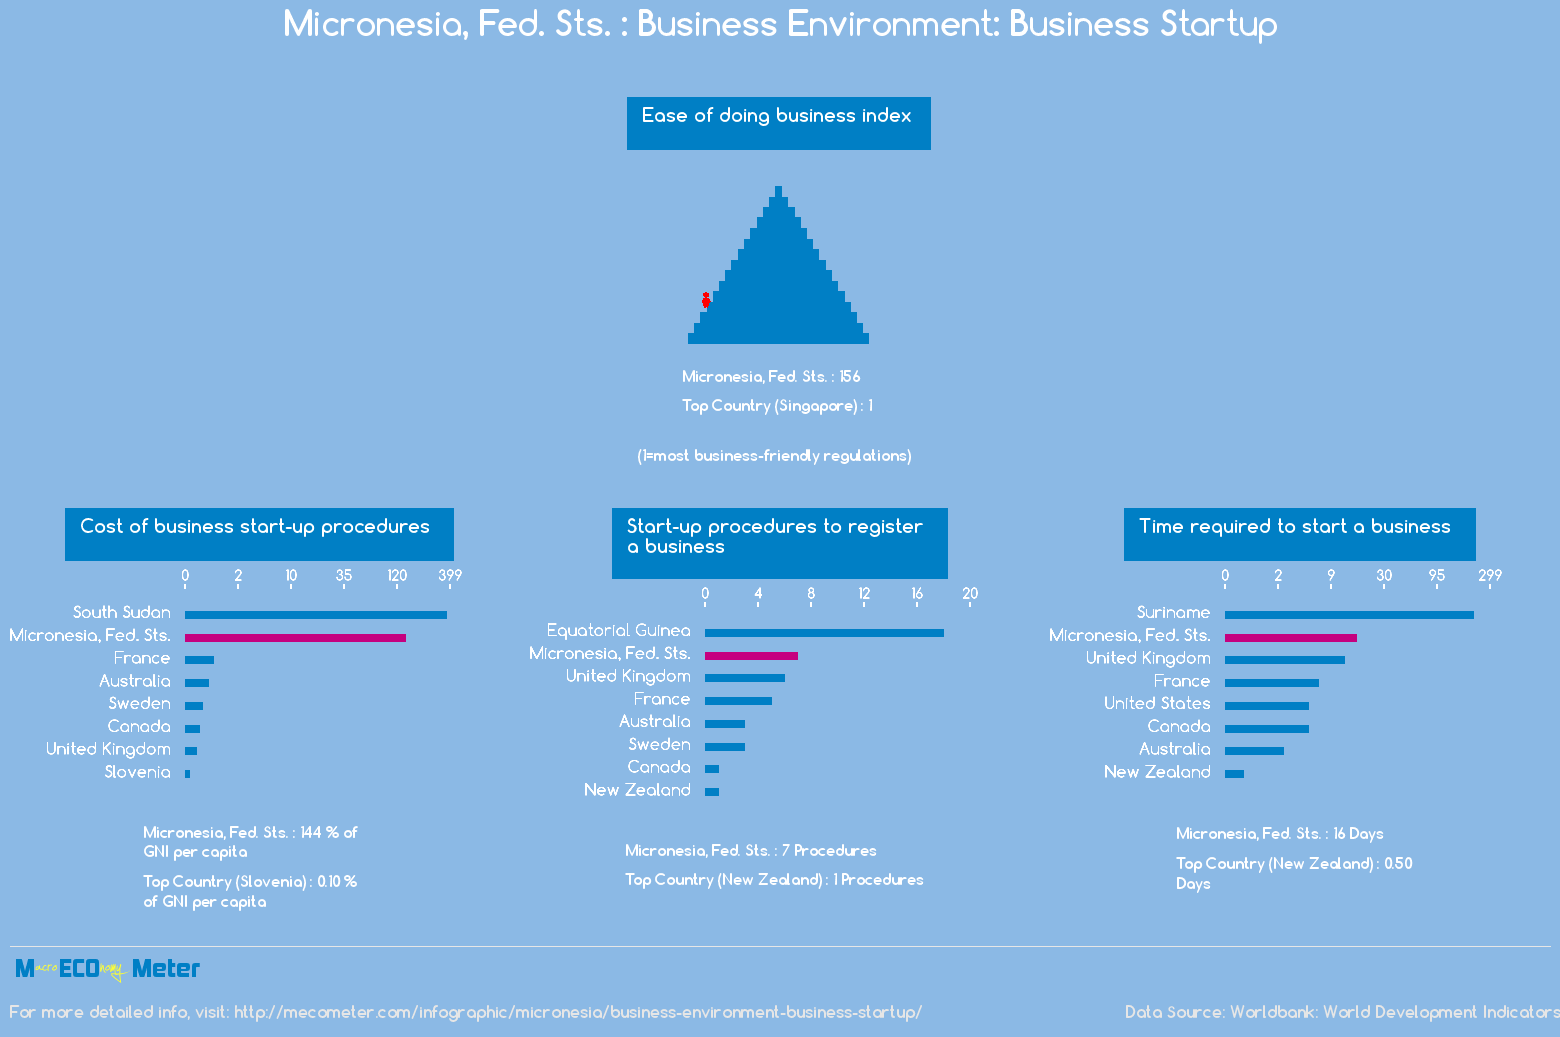 Micronesia, Fed. Sts. : Business Environment: Business Startup